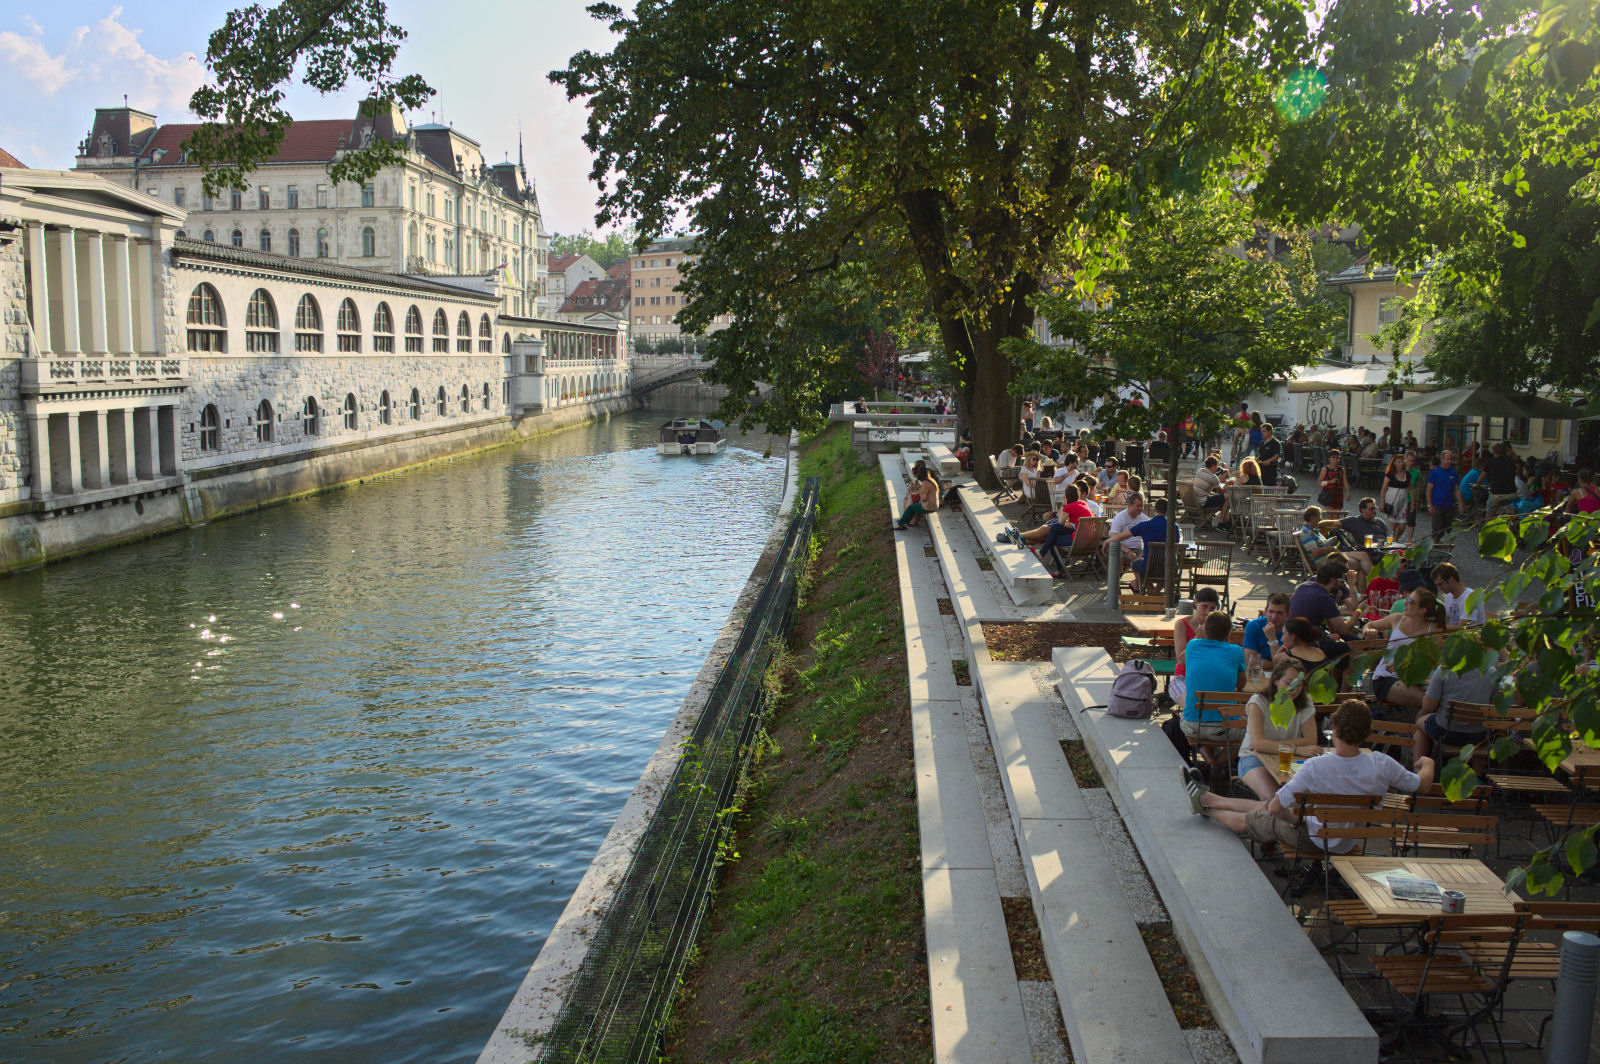 Ljubljana is full of relaxed people